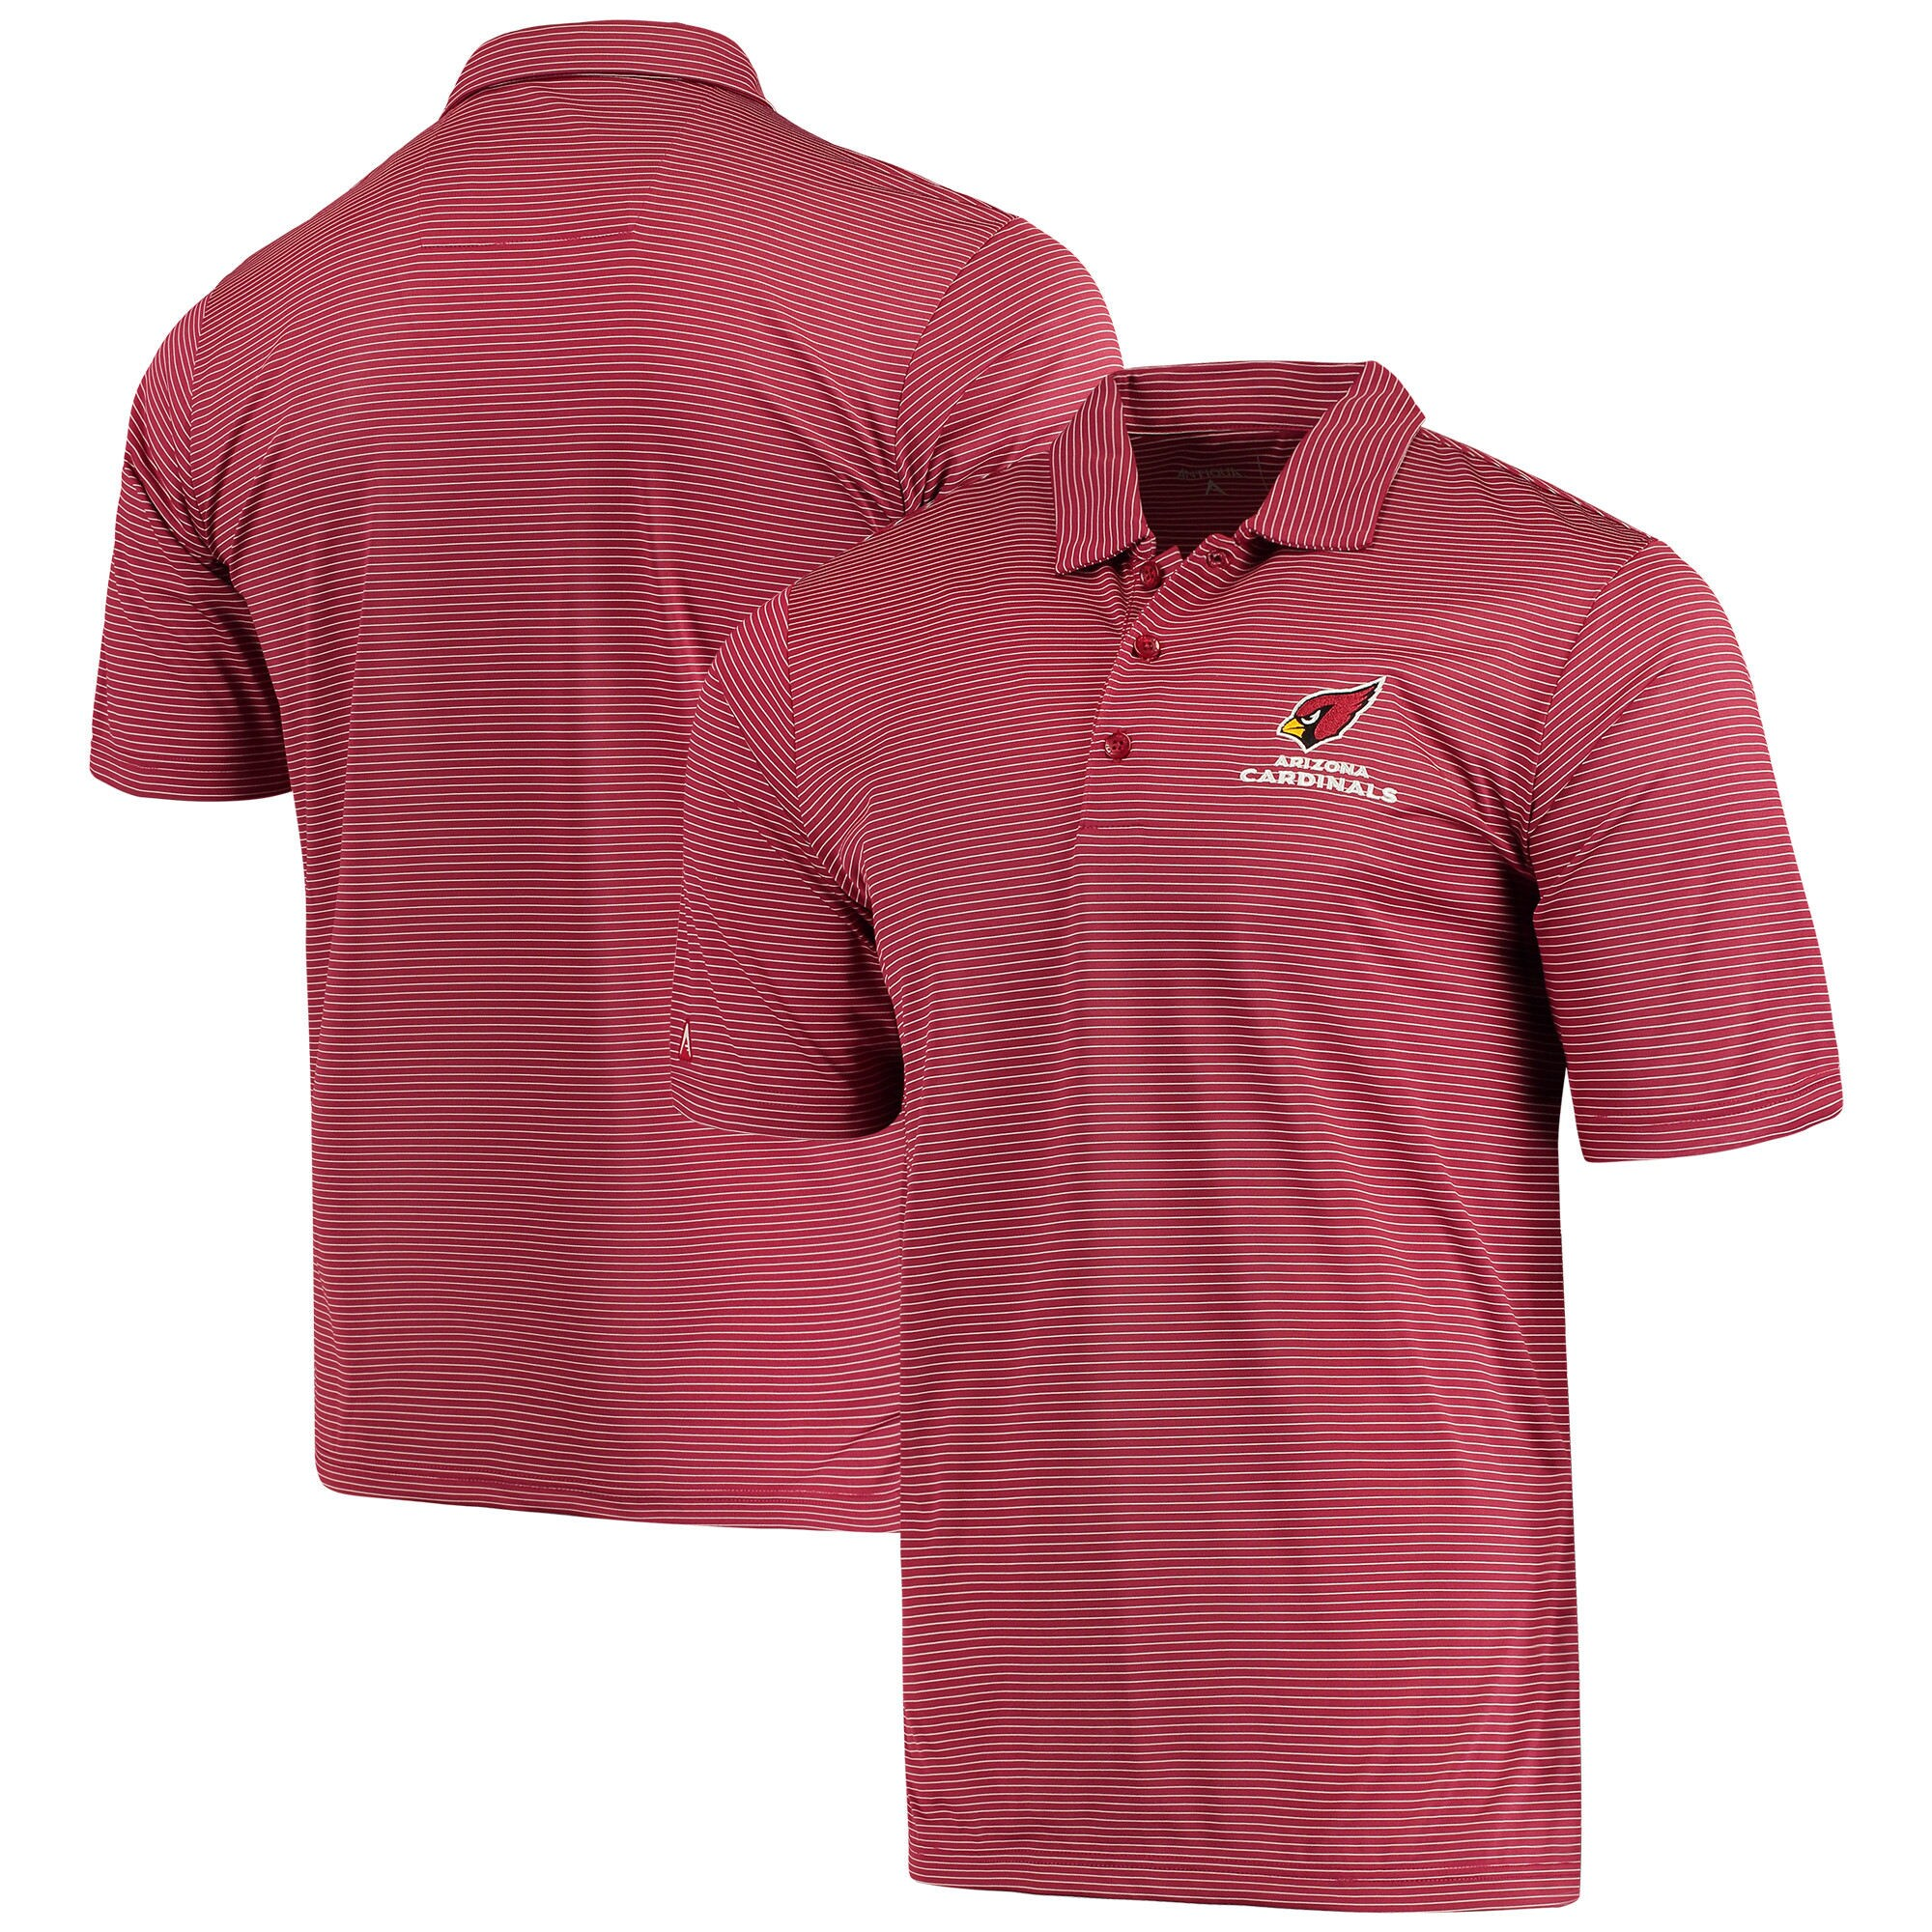 Arizona Cardinals Antigua Quest Polo - Cardinal/White